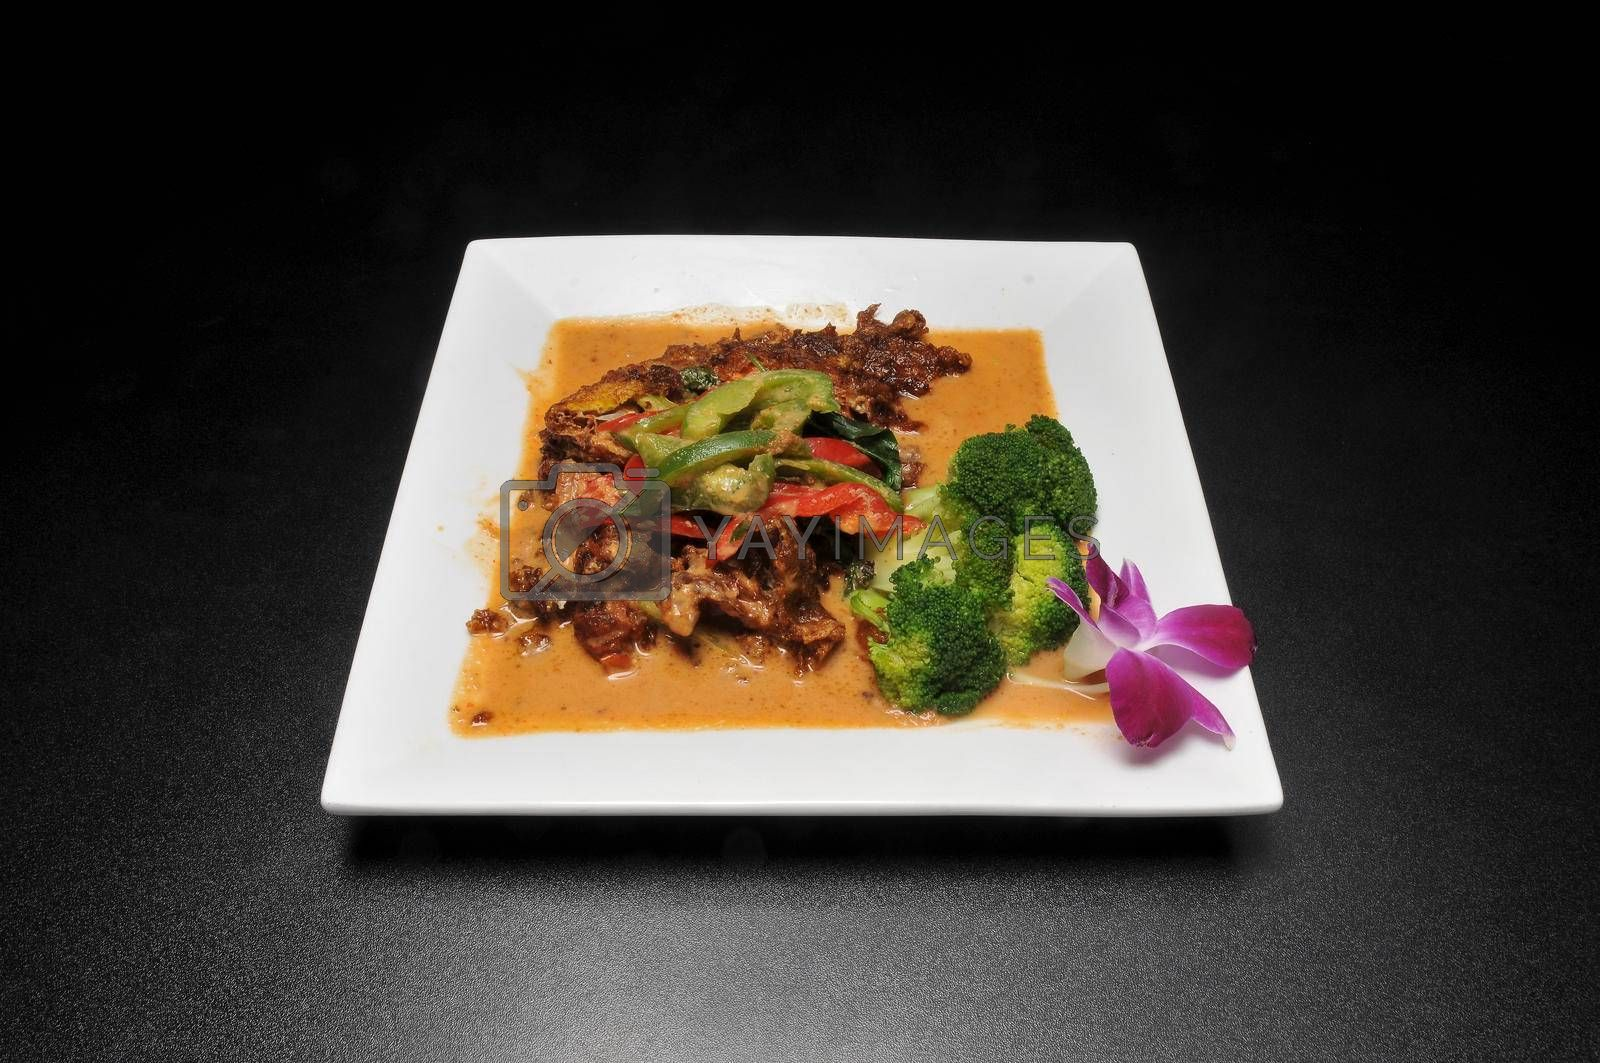 Delicious Thai dish known as Softshell Crab Panang Curry